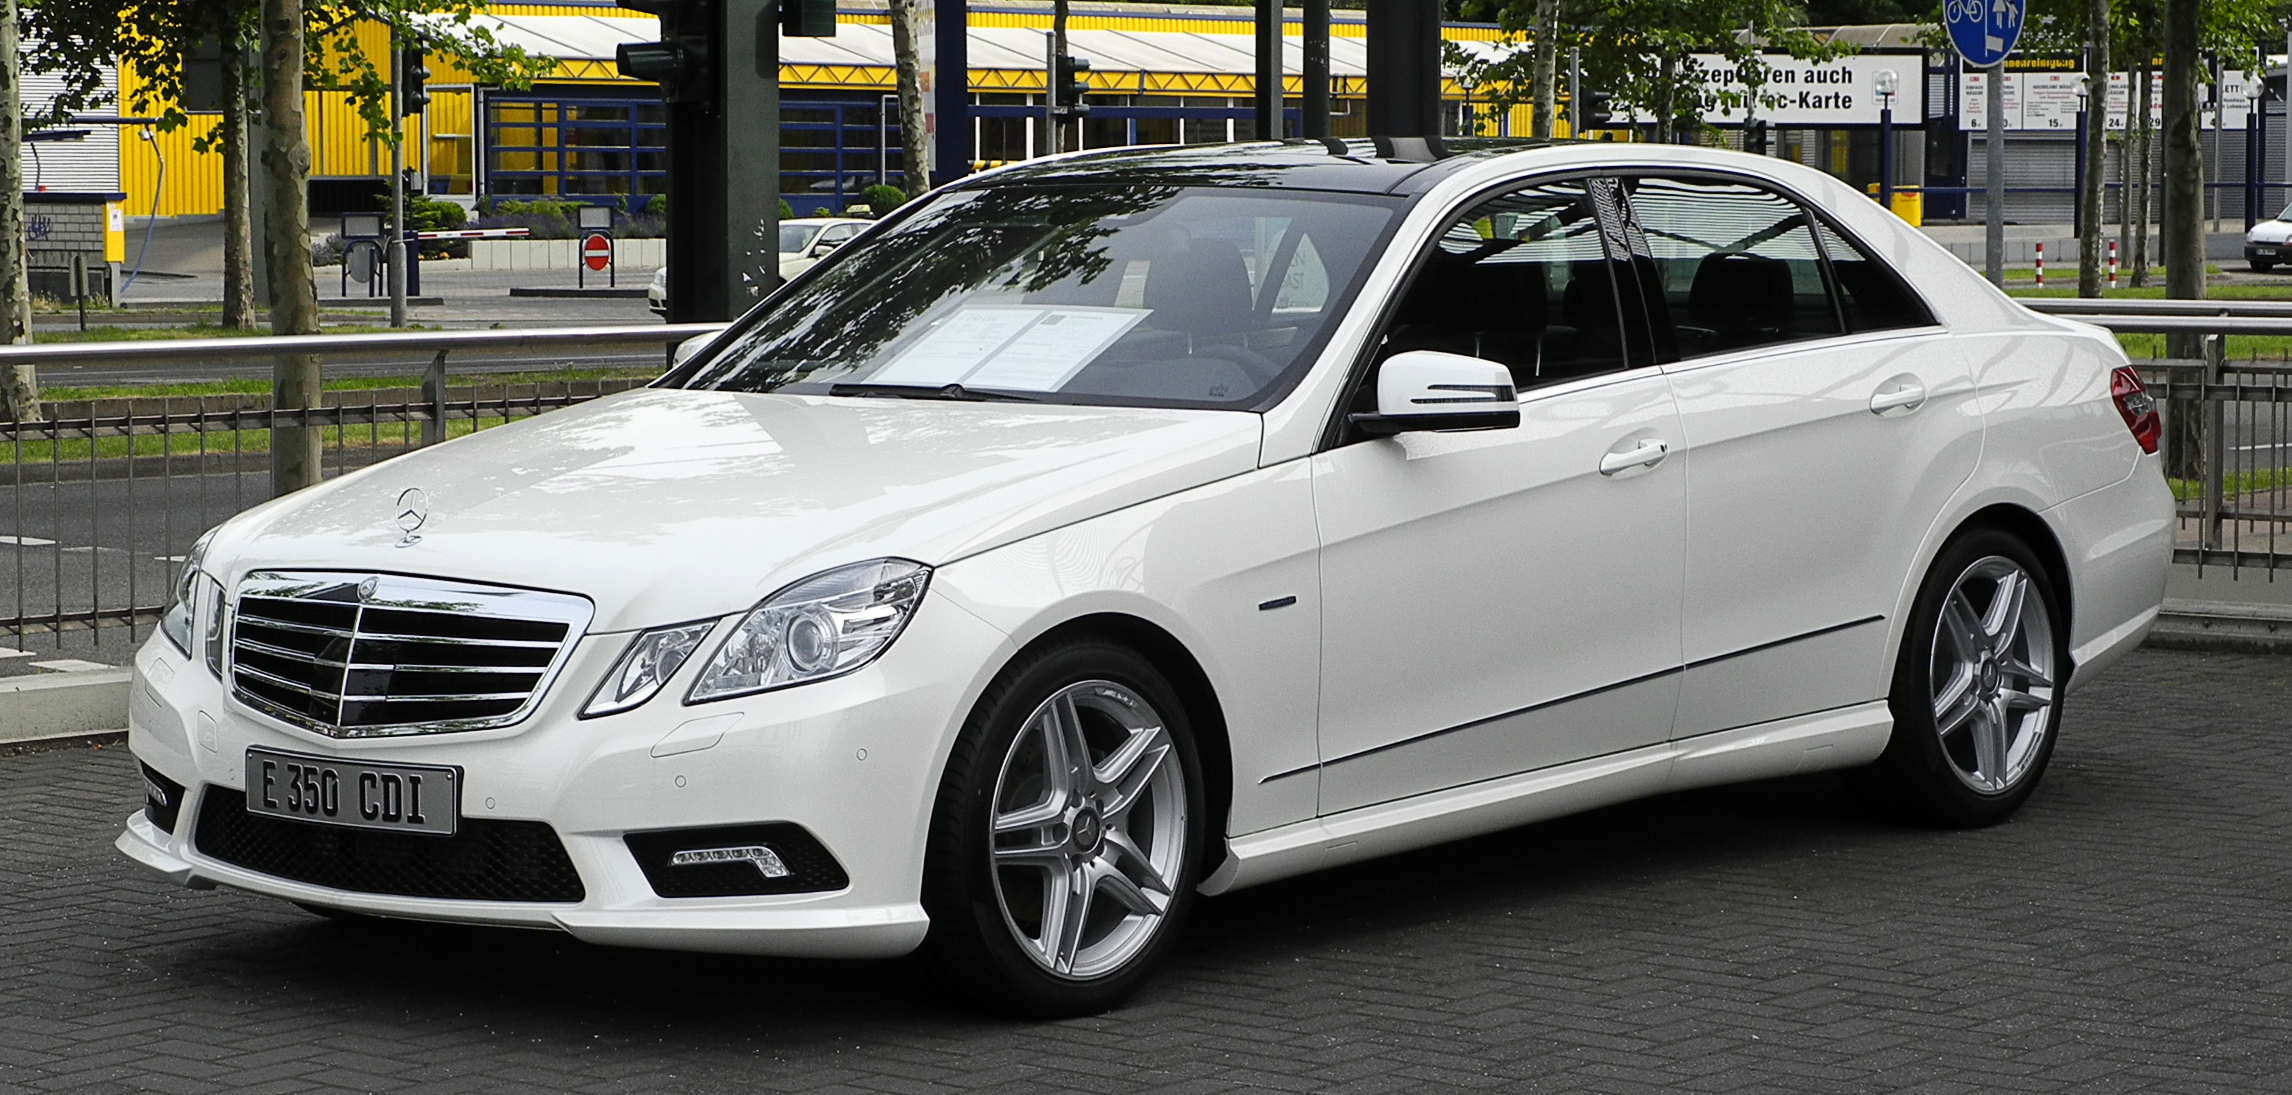 Mercedes benz e 350 cdi blueefficiency 4matic for Sporty mercedes benz